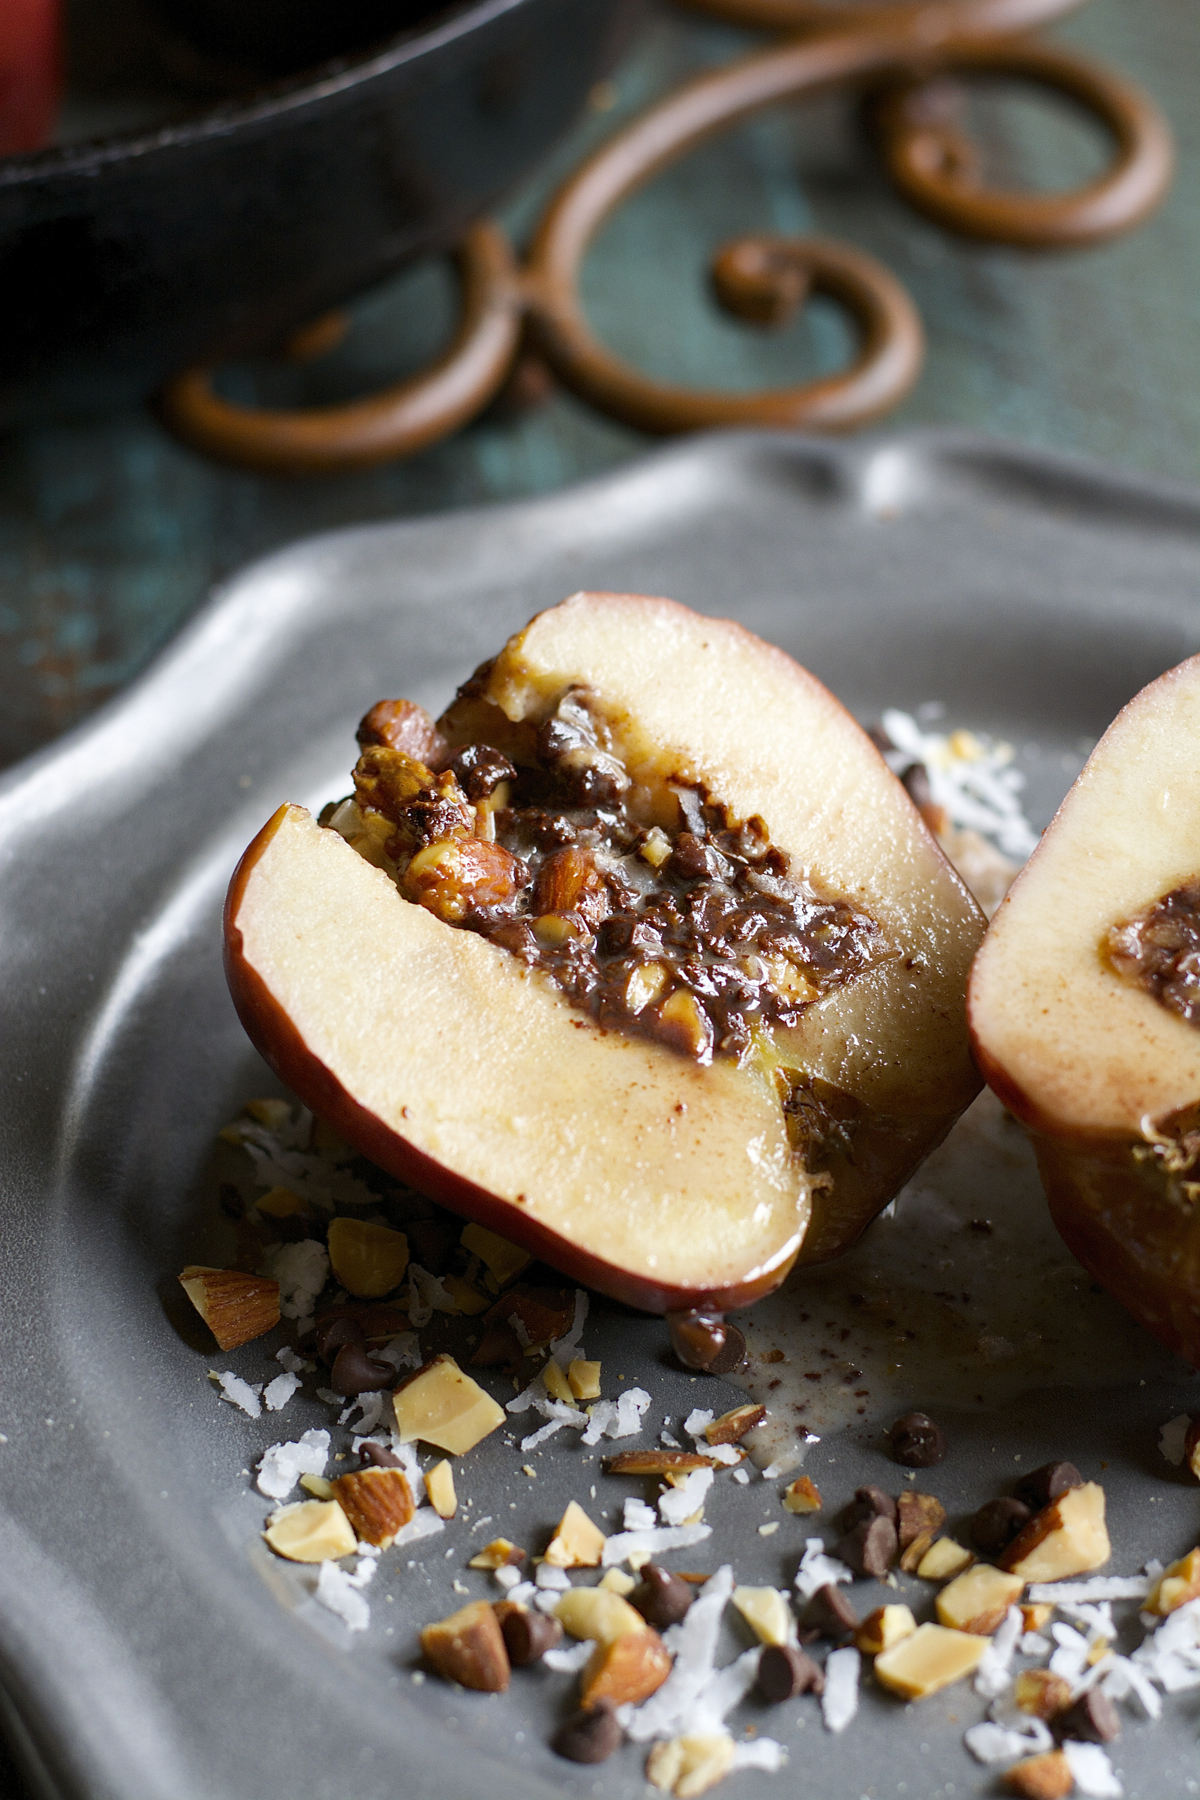 Chocolate Almond Stuffed Baked Apples are packed with coconut, lightly salted almonds and rich dark chocolate!